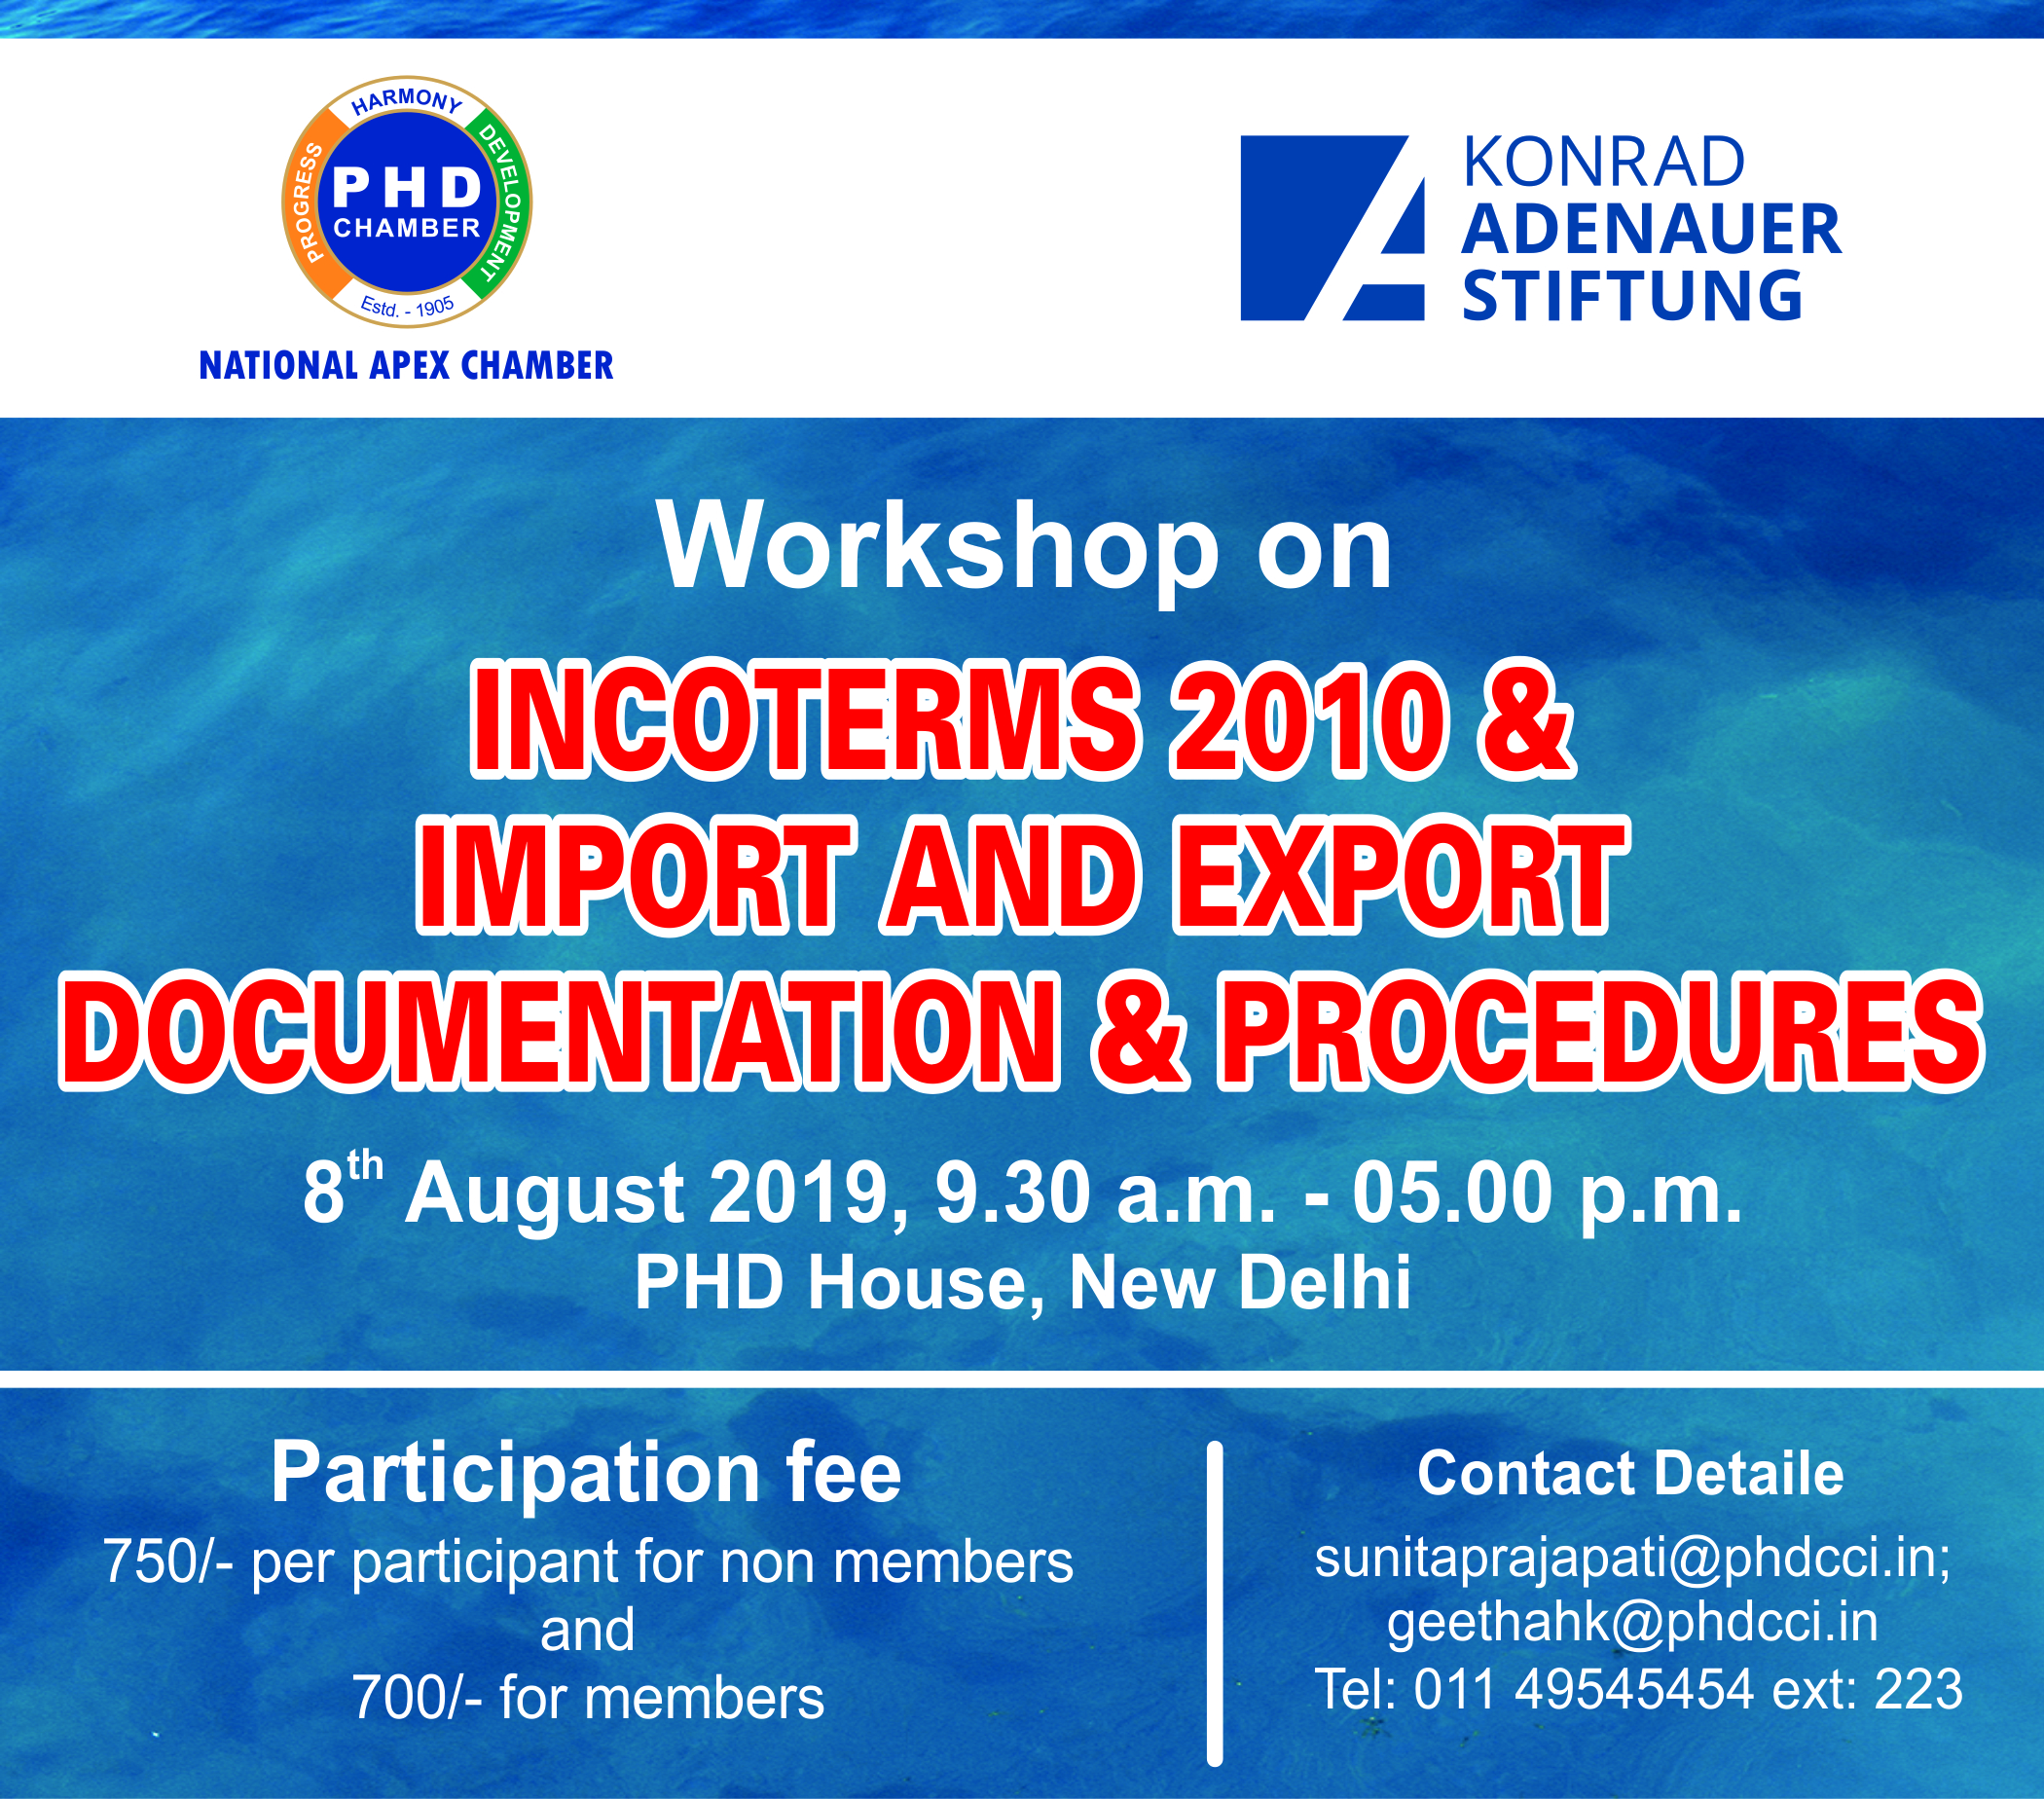 Workshop on INCOTERMS 2010 & IMPORT AND EXPORT DOCUMENTATION & PROCEDURES